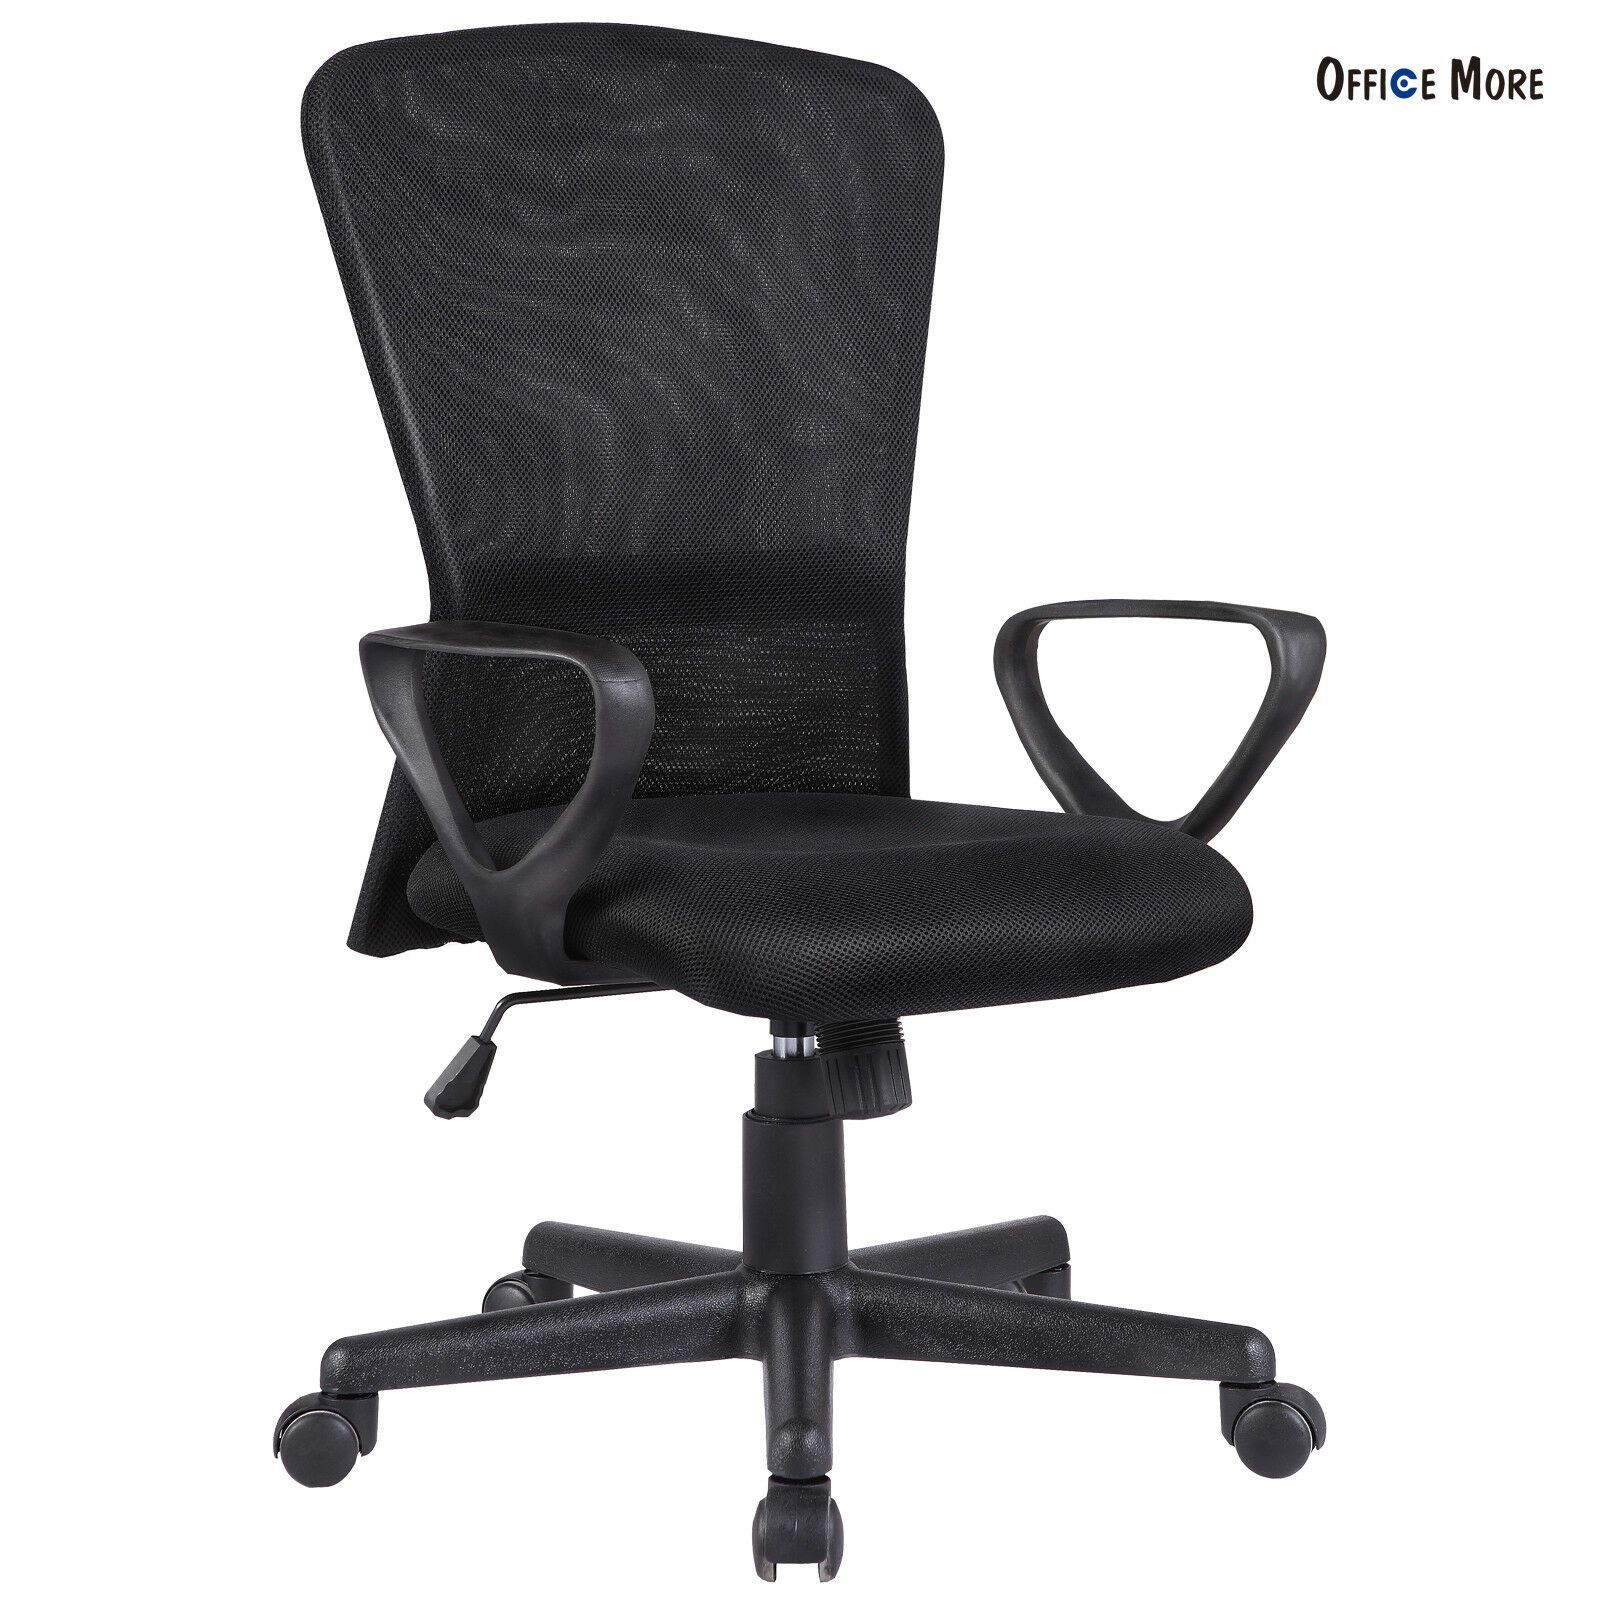 Ergonomic Mesh Office Chair Fit Computer Chair Desk Armrest With Back Black Of In 2020 Office Chair Mesh Office Chair Chair